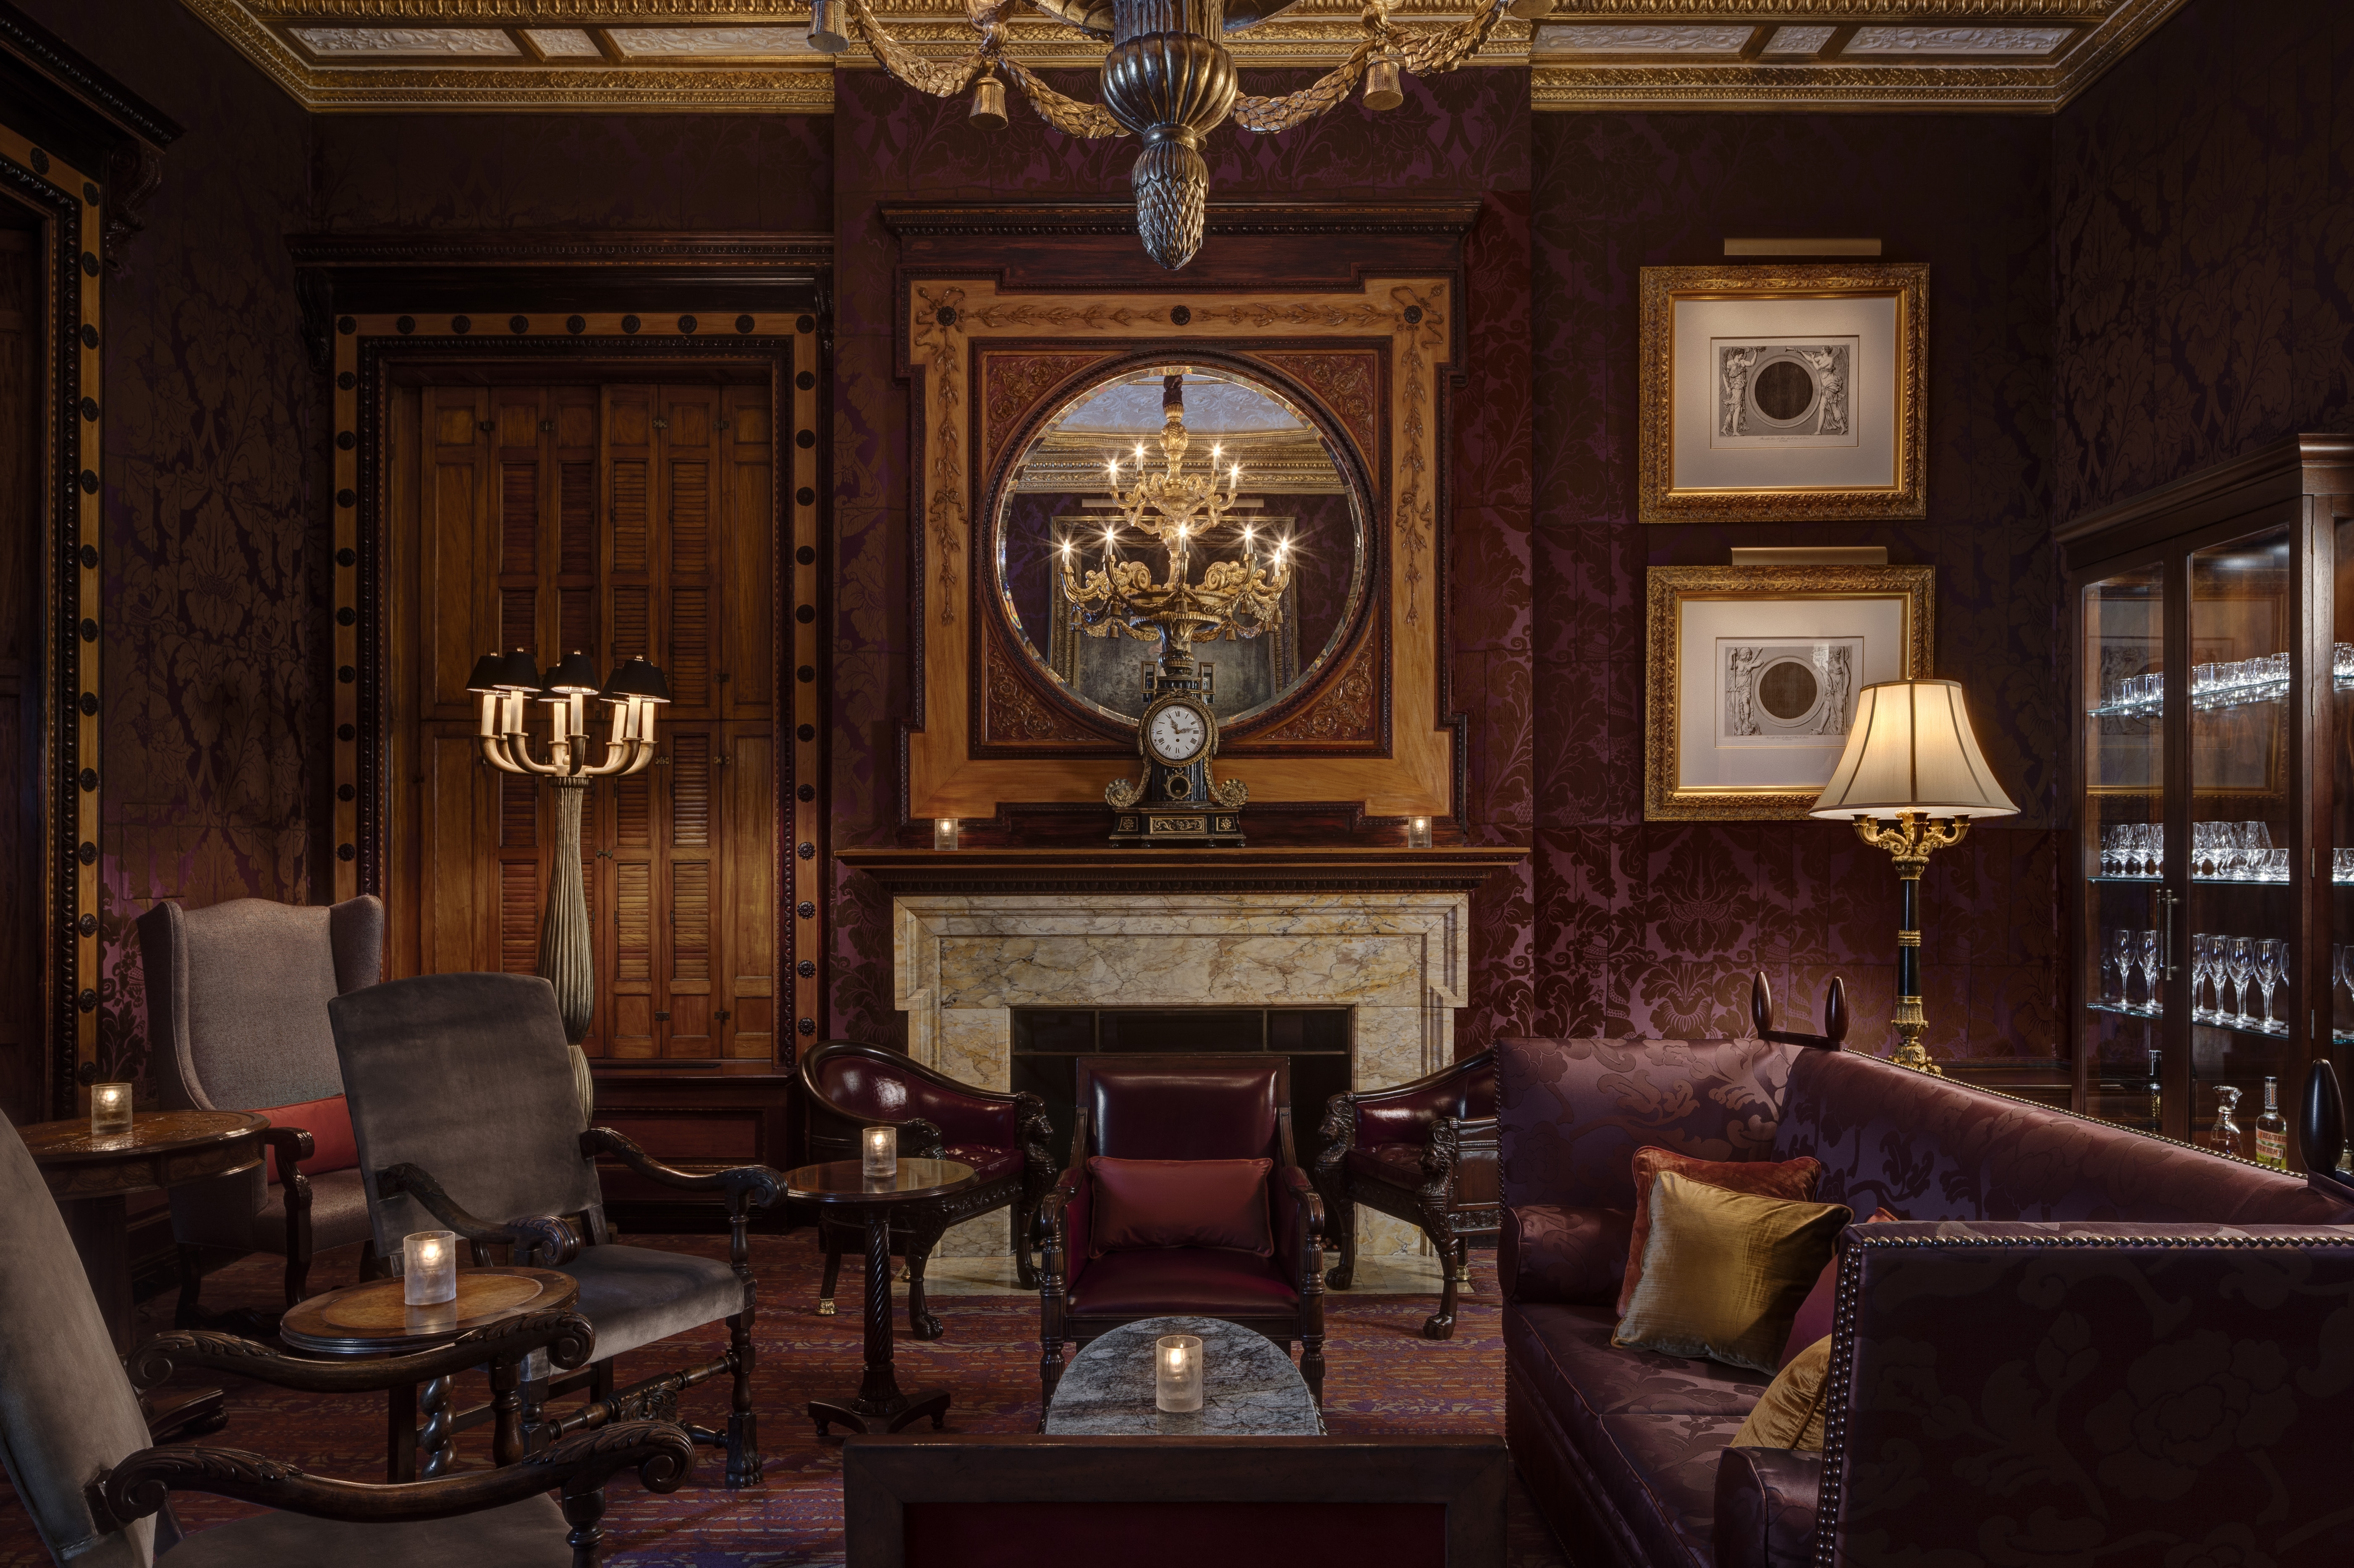 The New York Palace Hotel Rarities